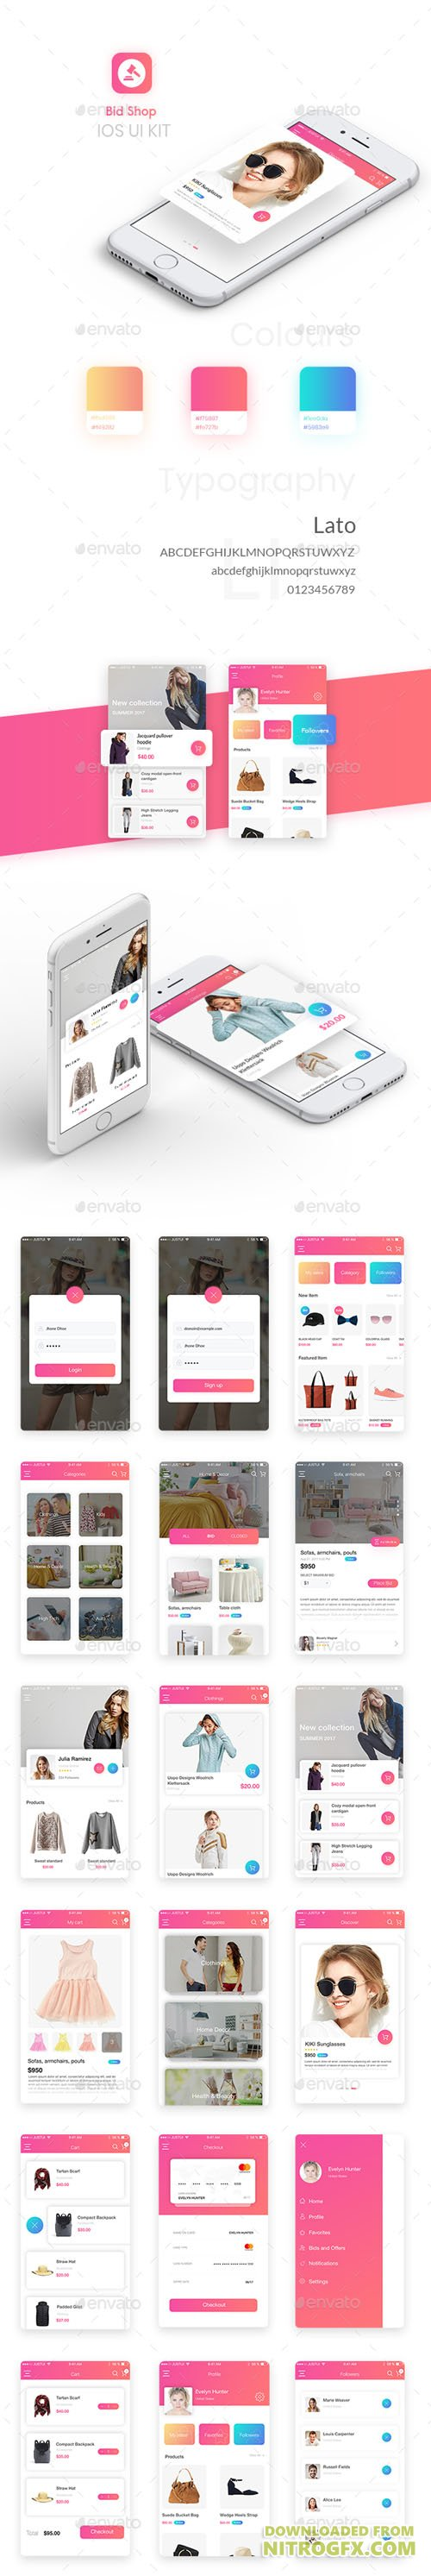 Bid Shop UI KIT 20698656